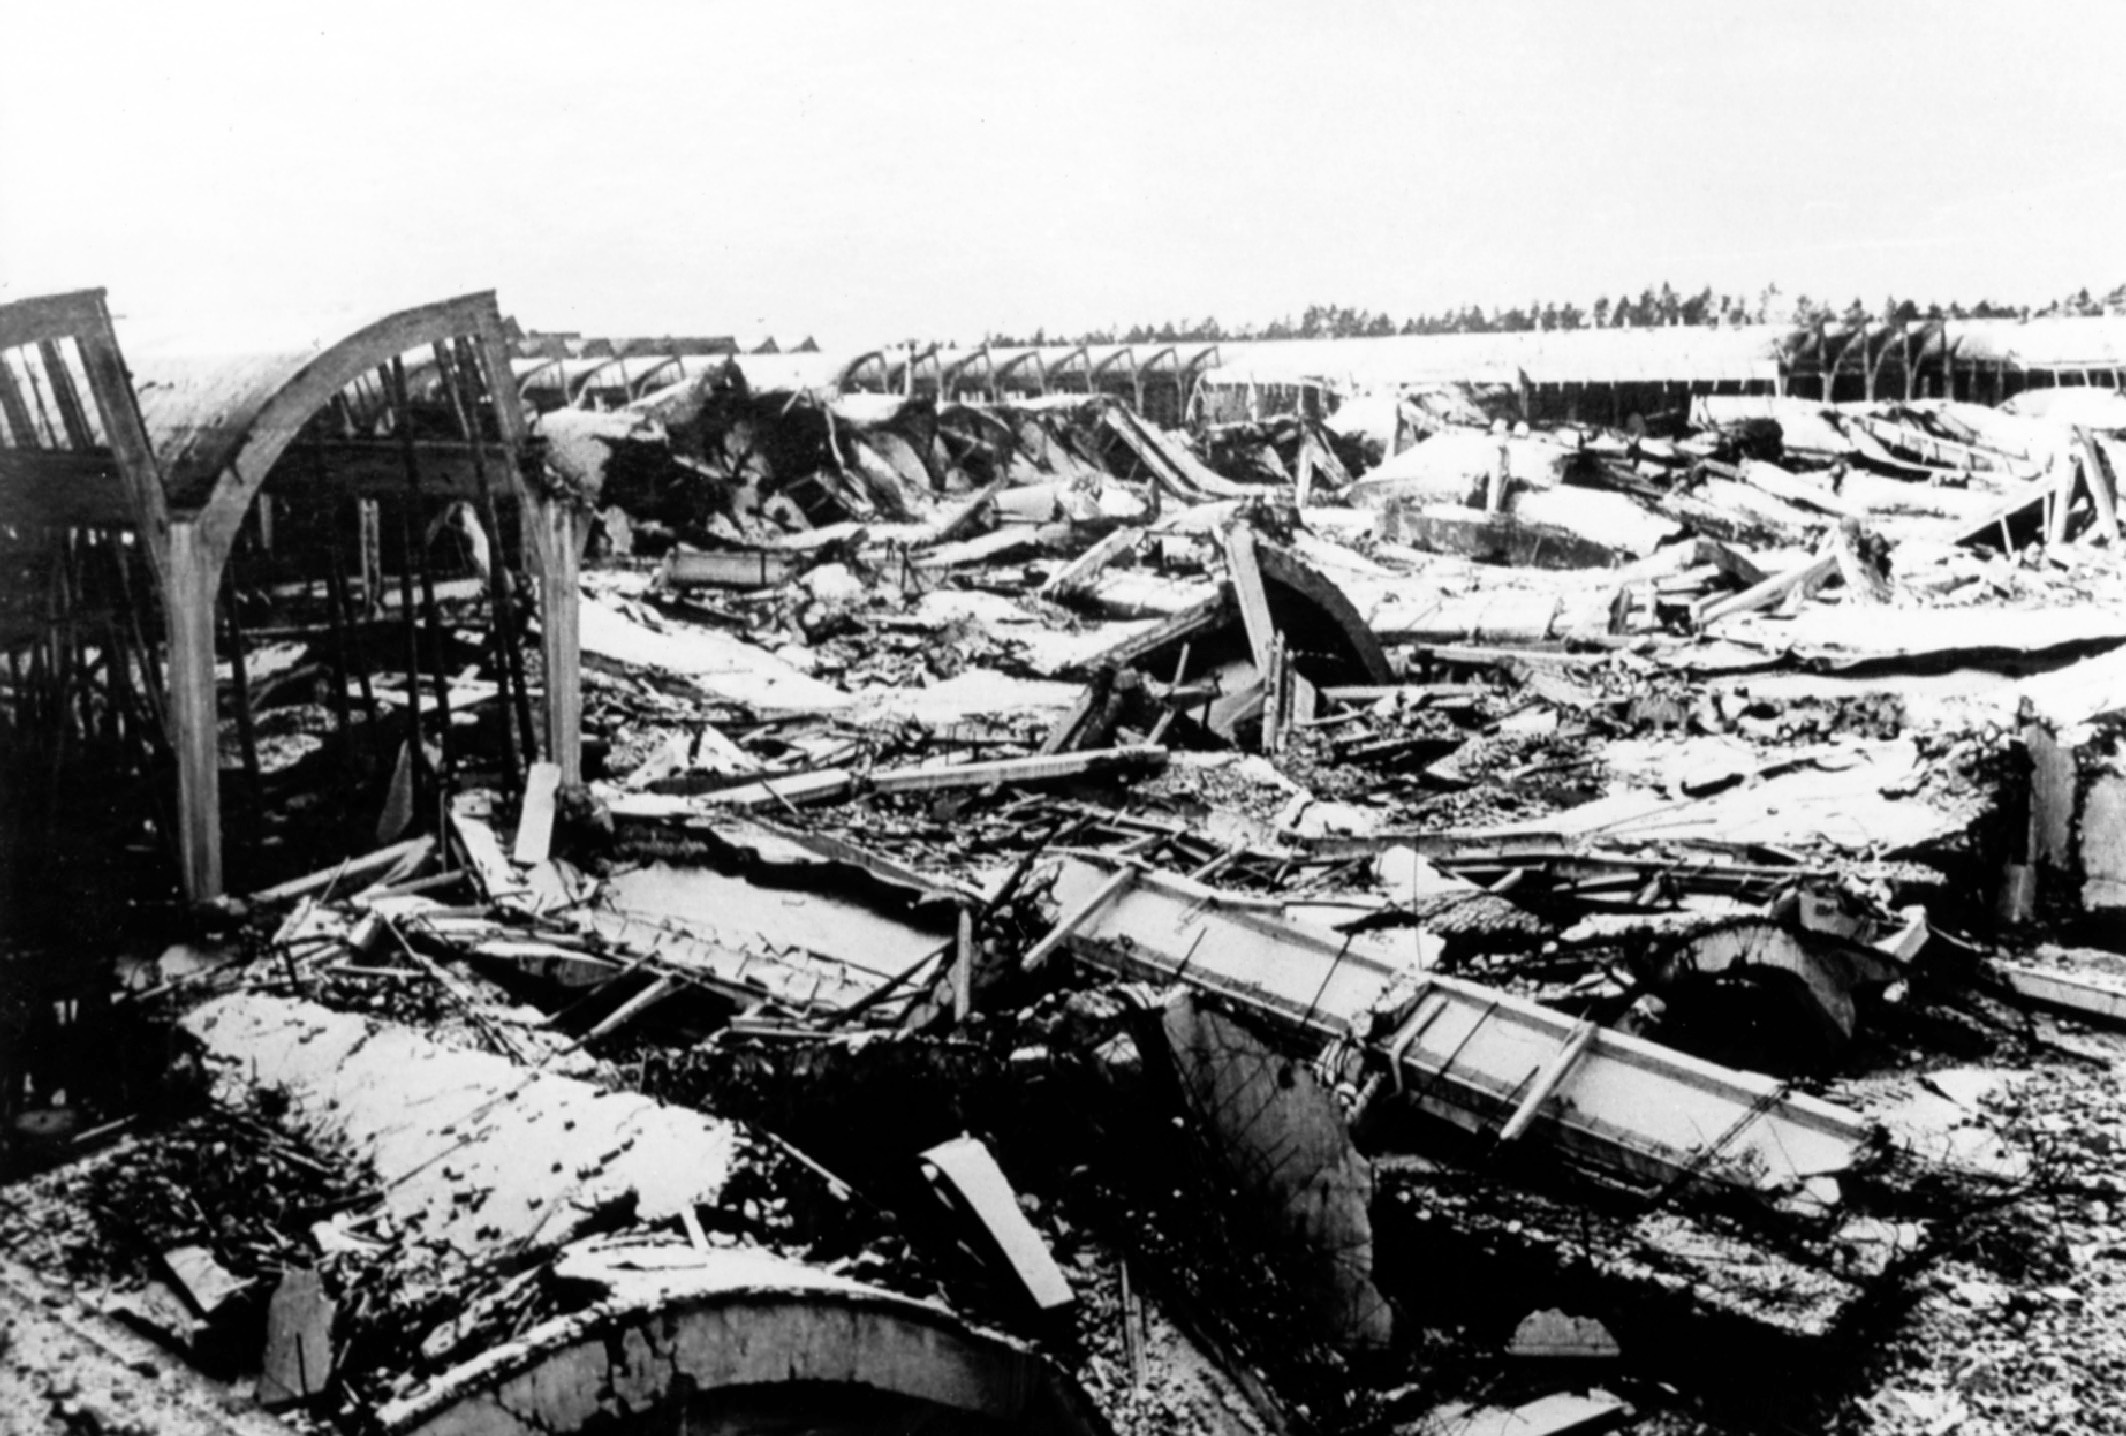 The Volkswagen plant had been largely destroyed by air raids in 1944.